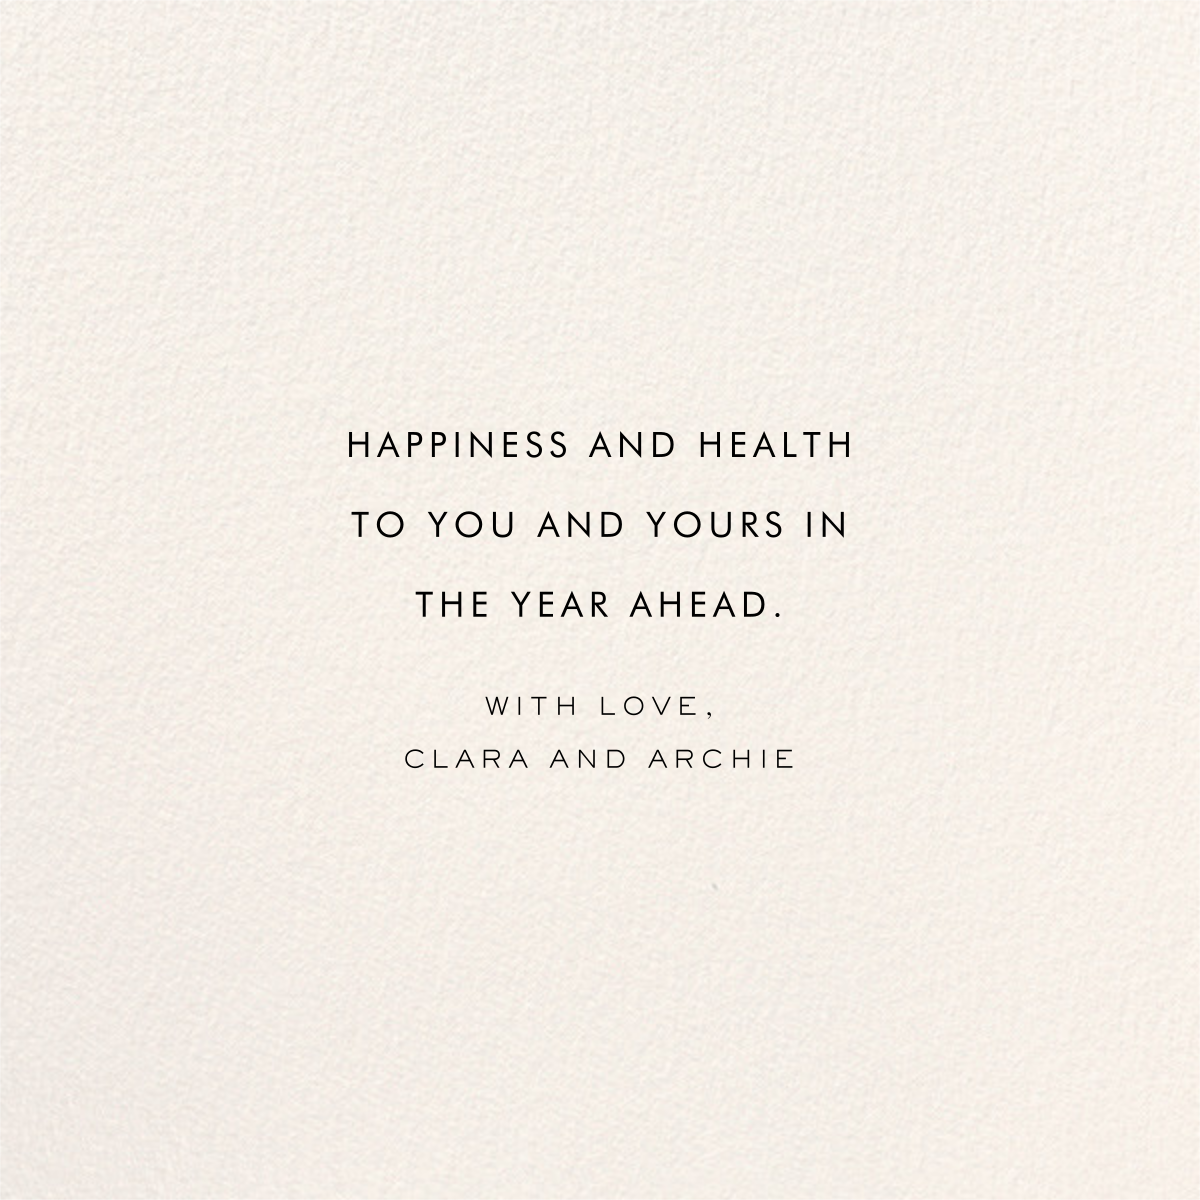 Confetti New Year (Greeting) - Gold/Cream - kate spade new york - New Year - card back